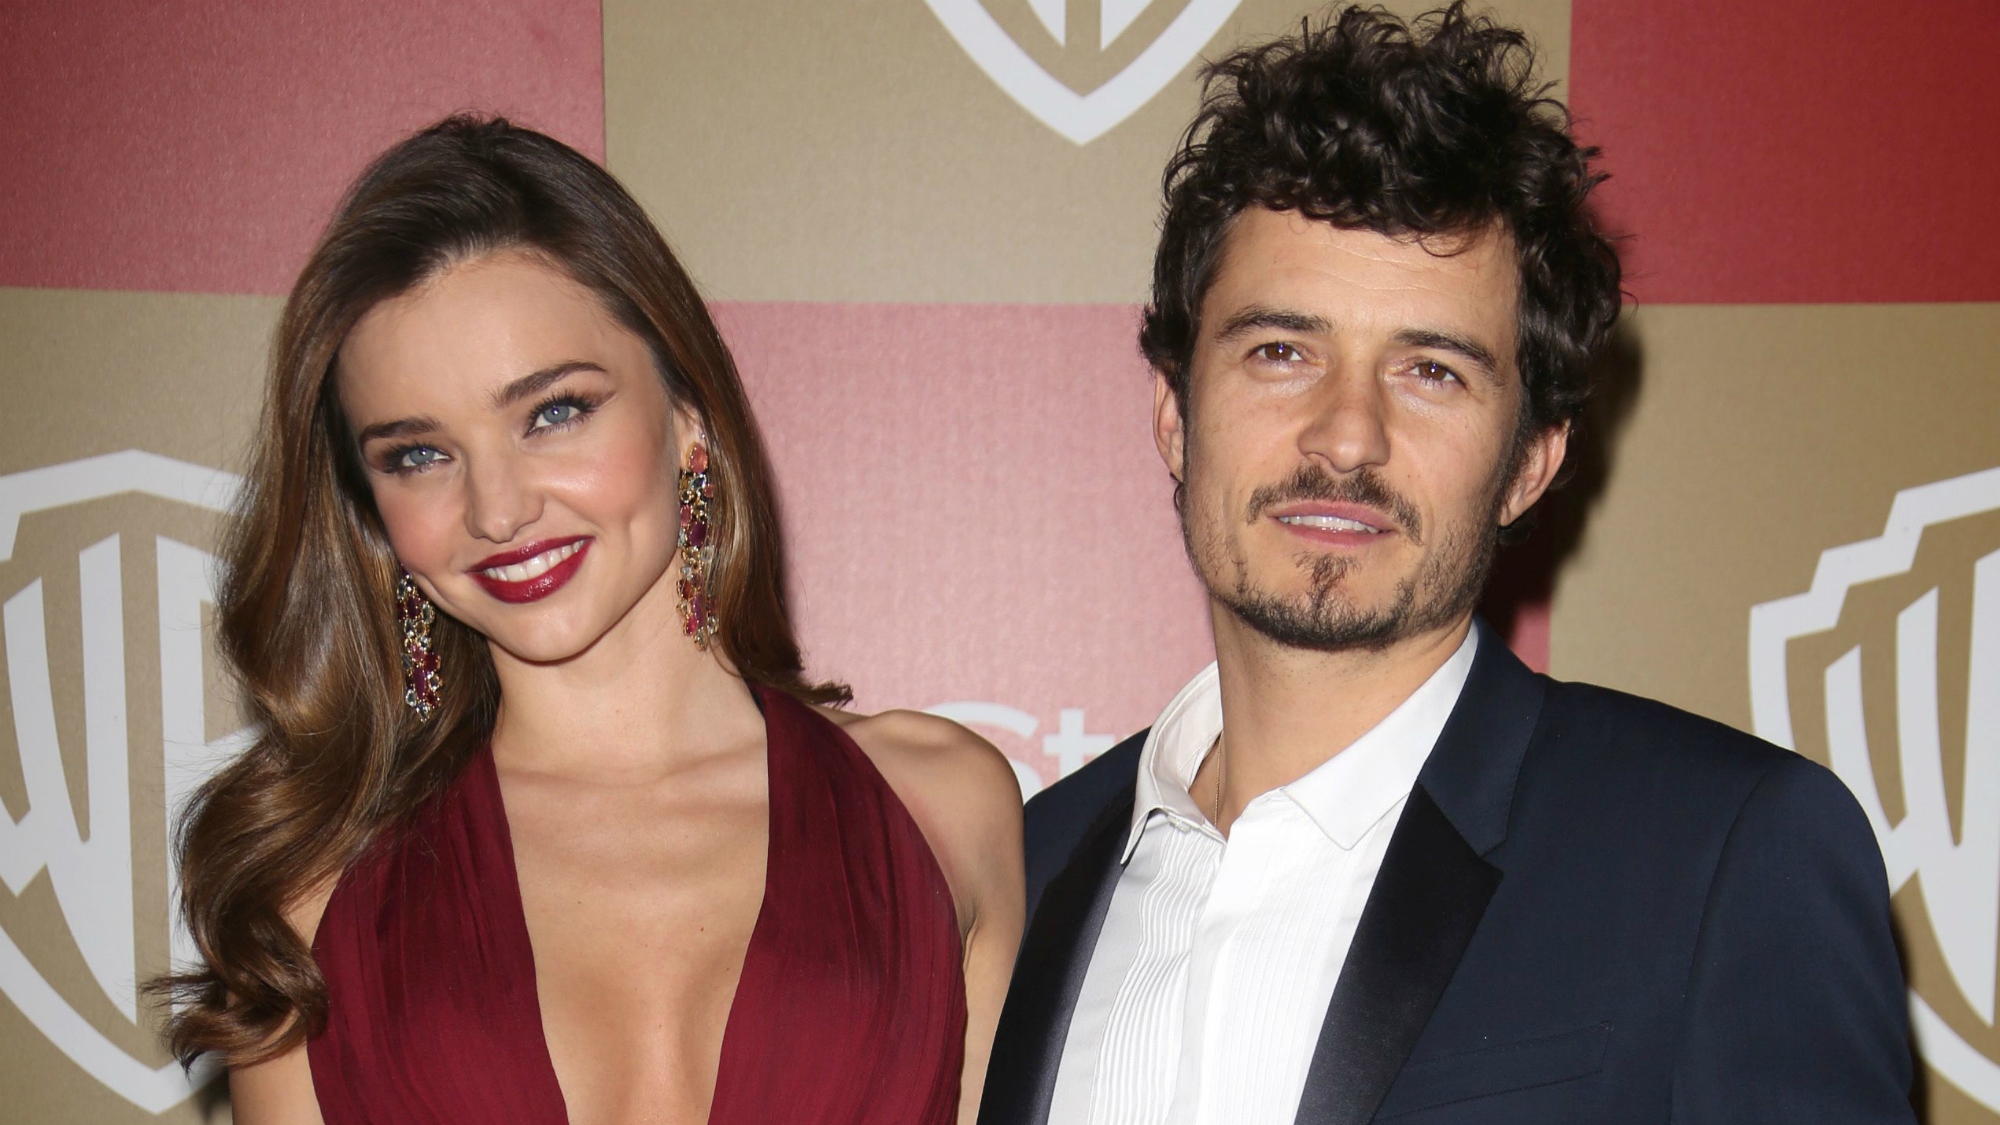 Miranda Kerr Opens Up About Her Divorce From Orlando Bloom